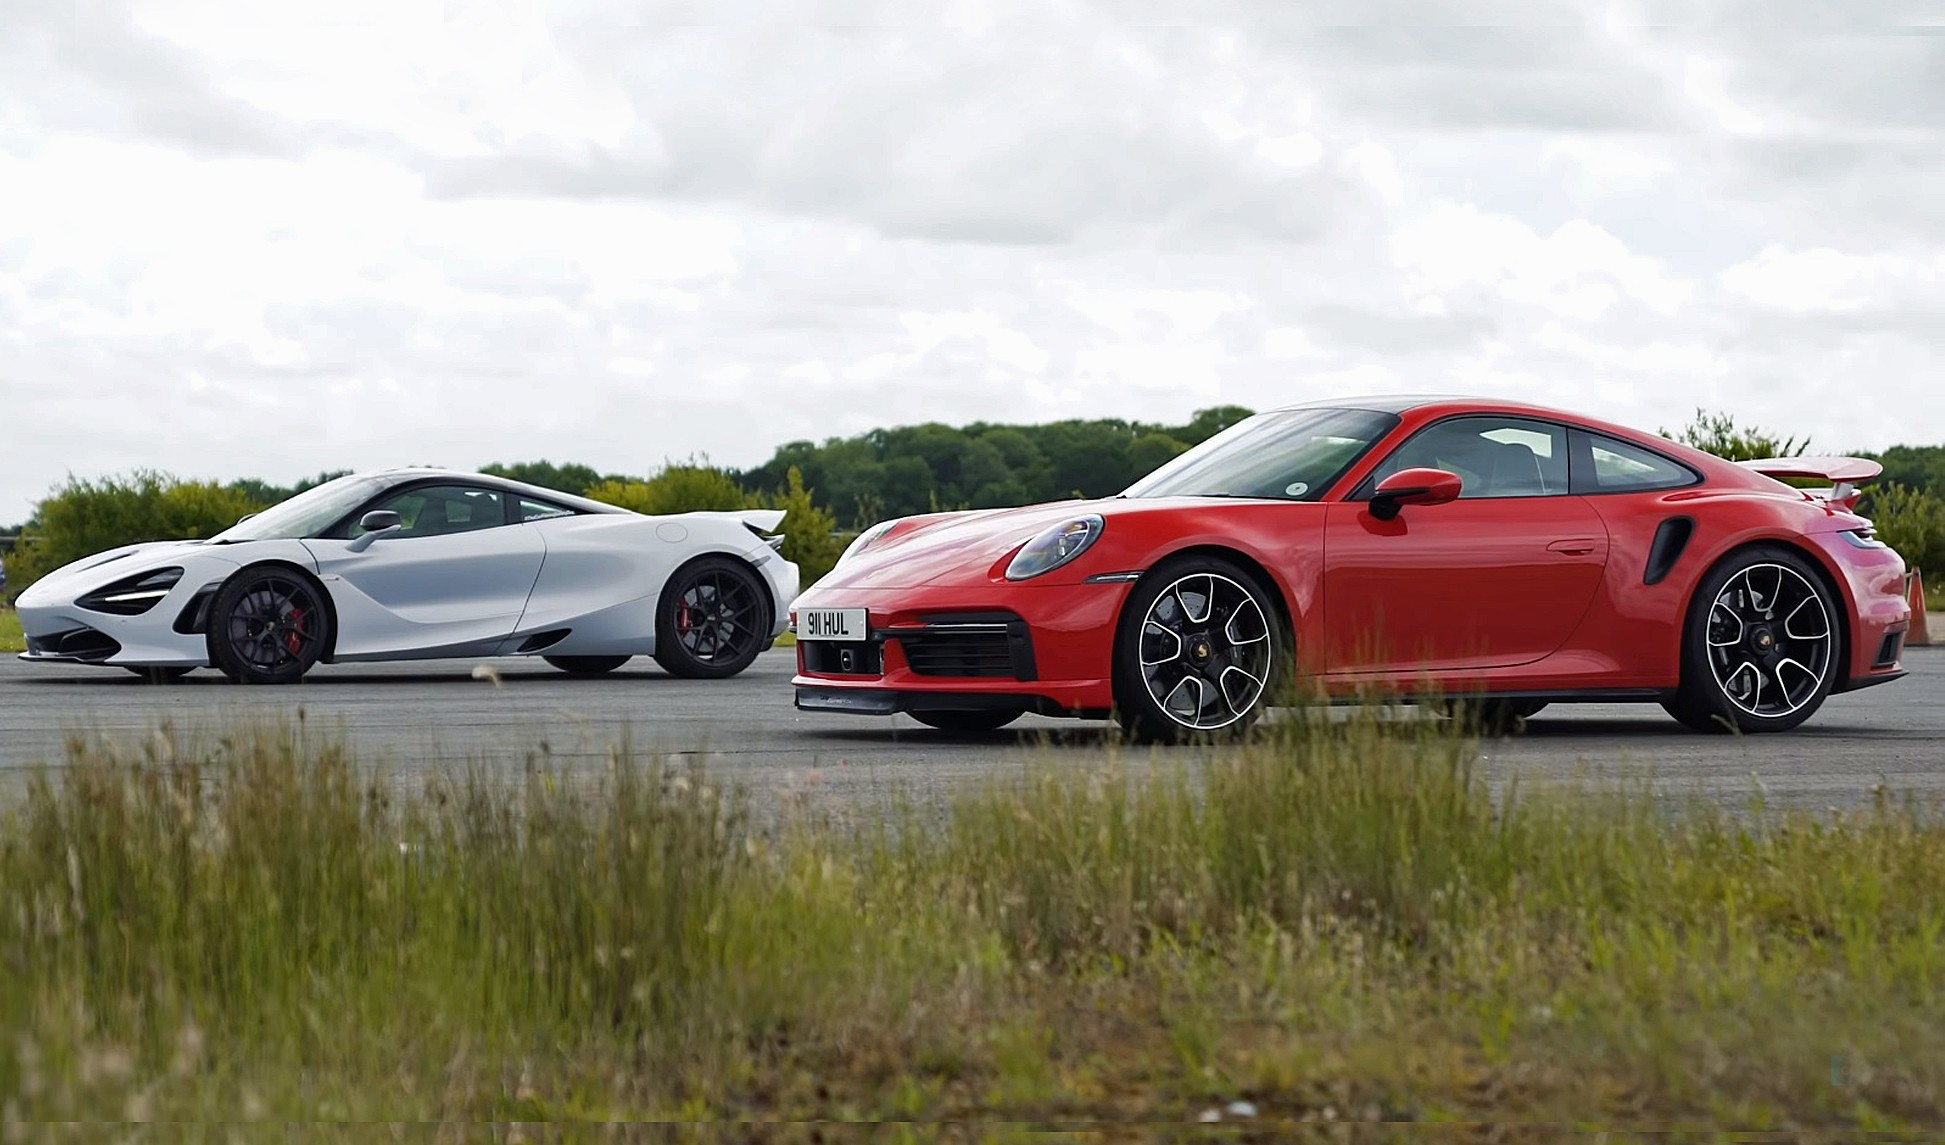 McLaren 720S vs Porsche 911 Turbo S drag race rear front